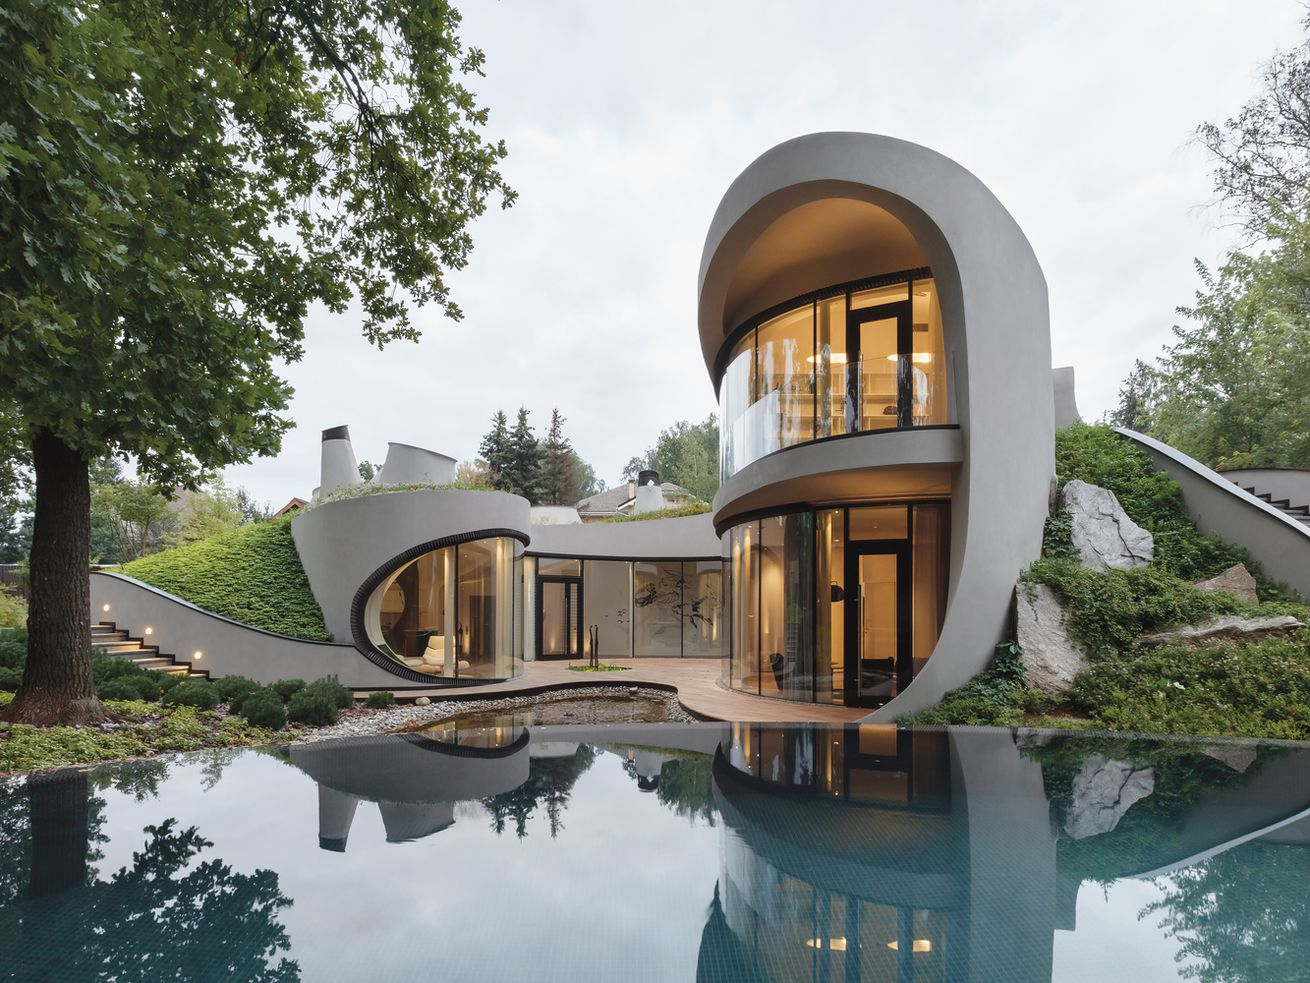 Futuristic modern home goes all in on curves